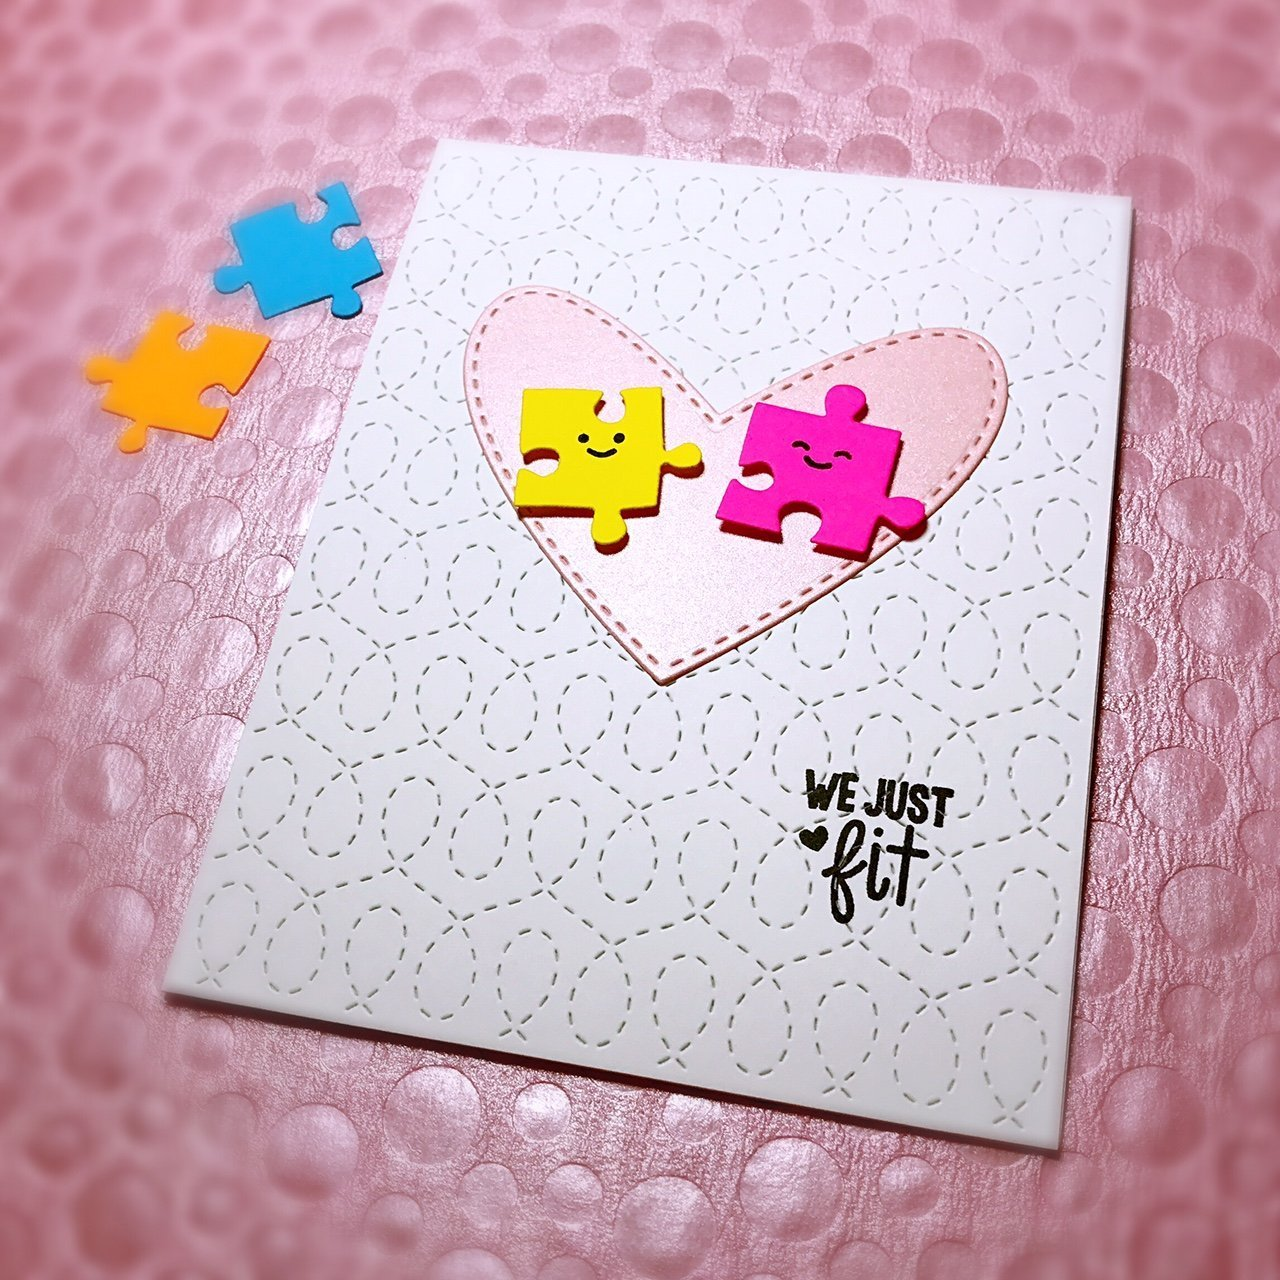 Amazon handmade love card engagement card anniversary amazon handmade love card engagement card anniversary card valentines day card we just fit handmade kristyandbryce Choice Image